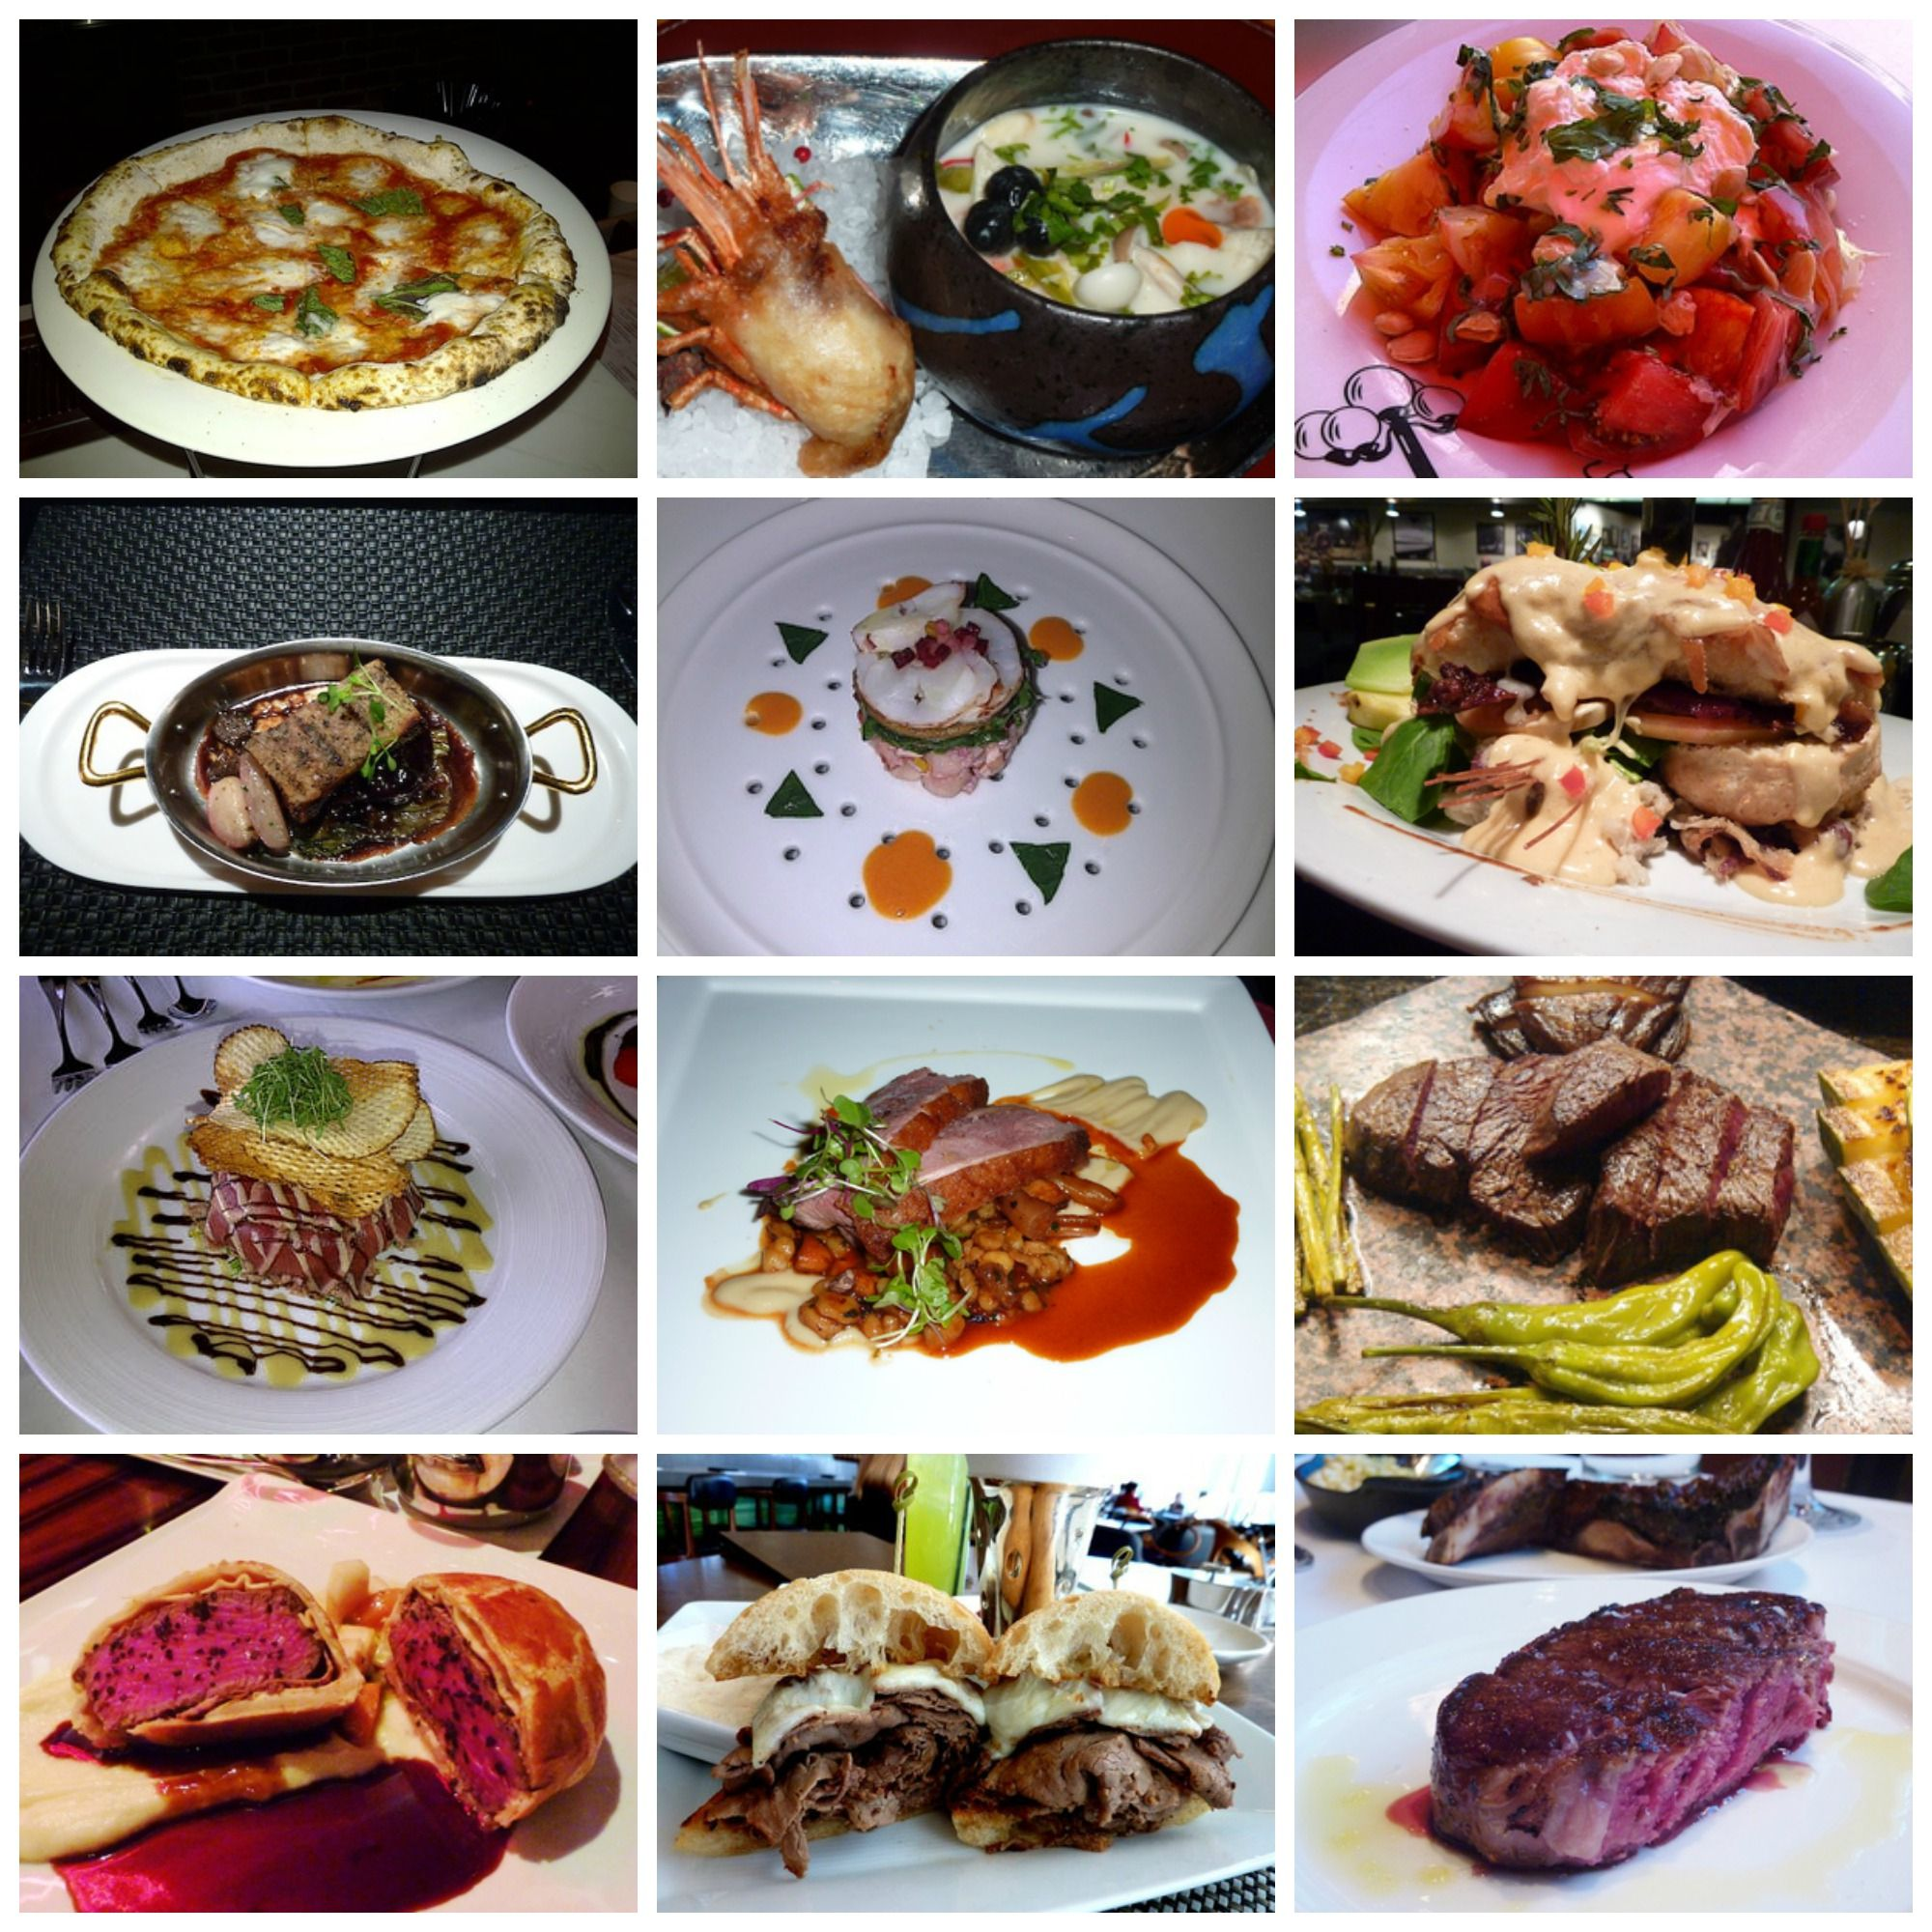 Cool Places To Eat In La: Places To Eat In Las Vegas